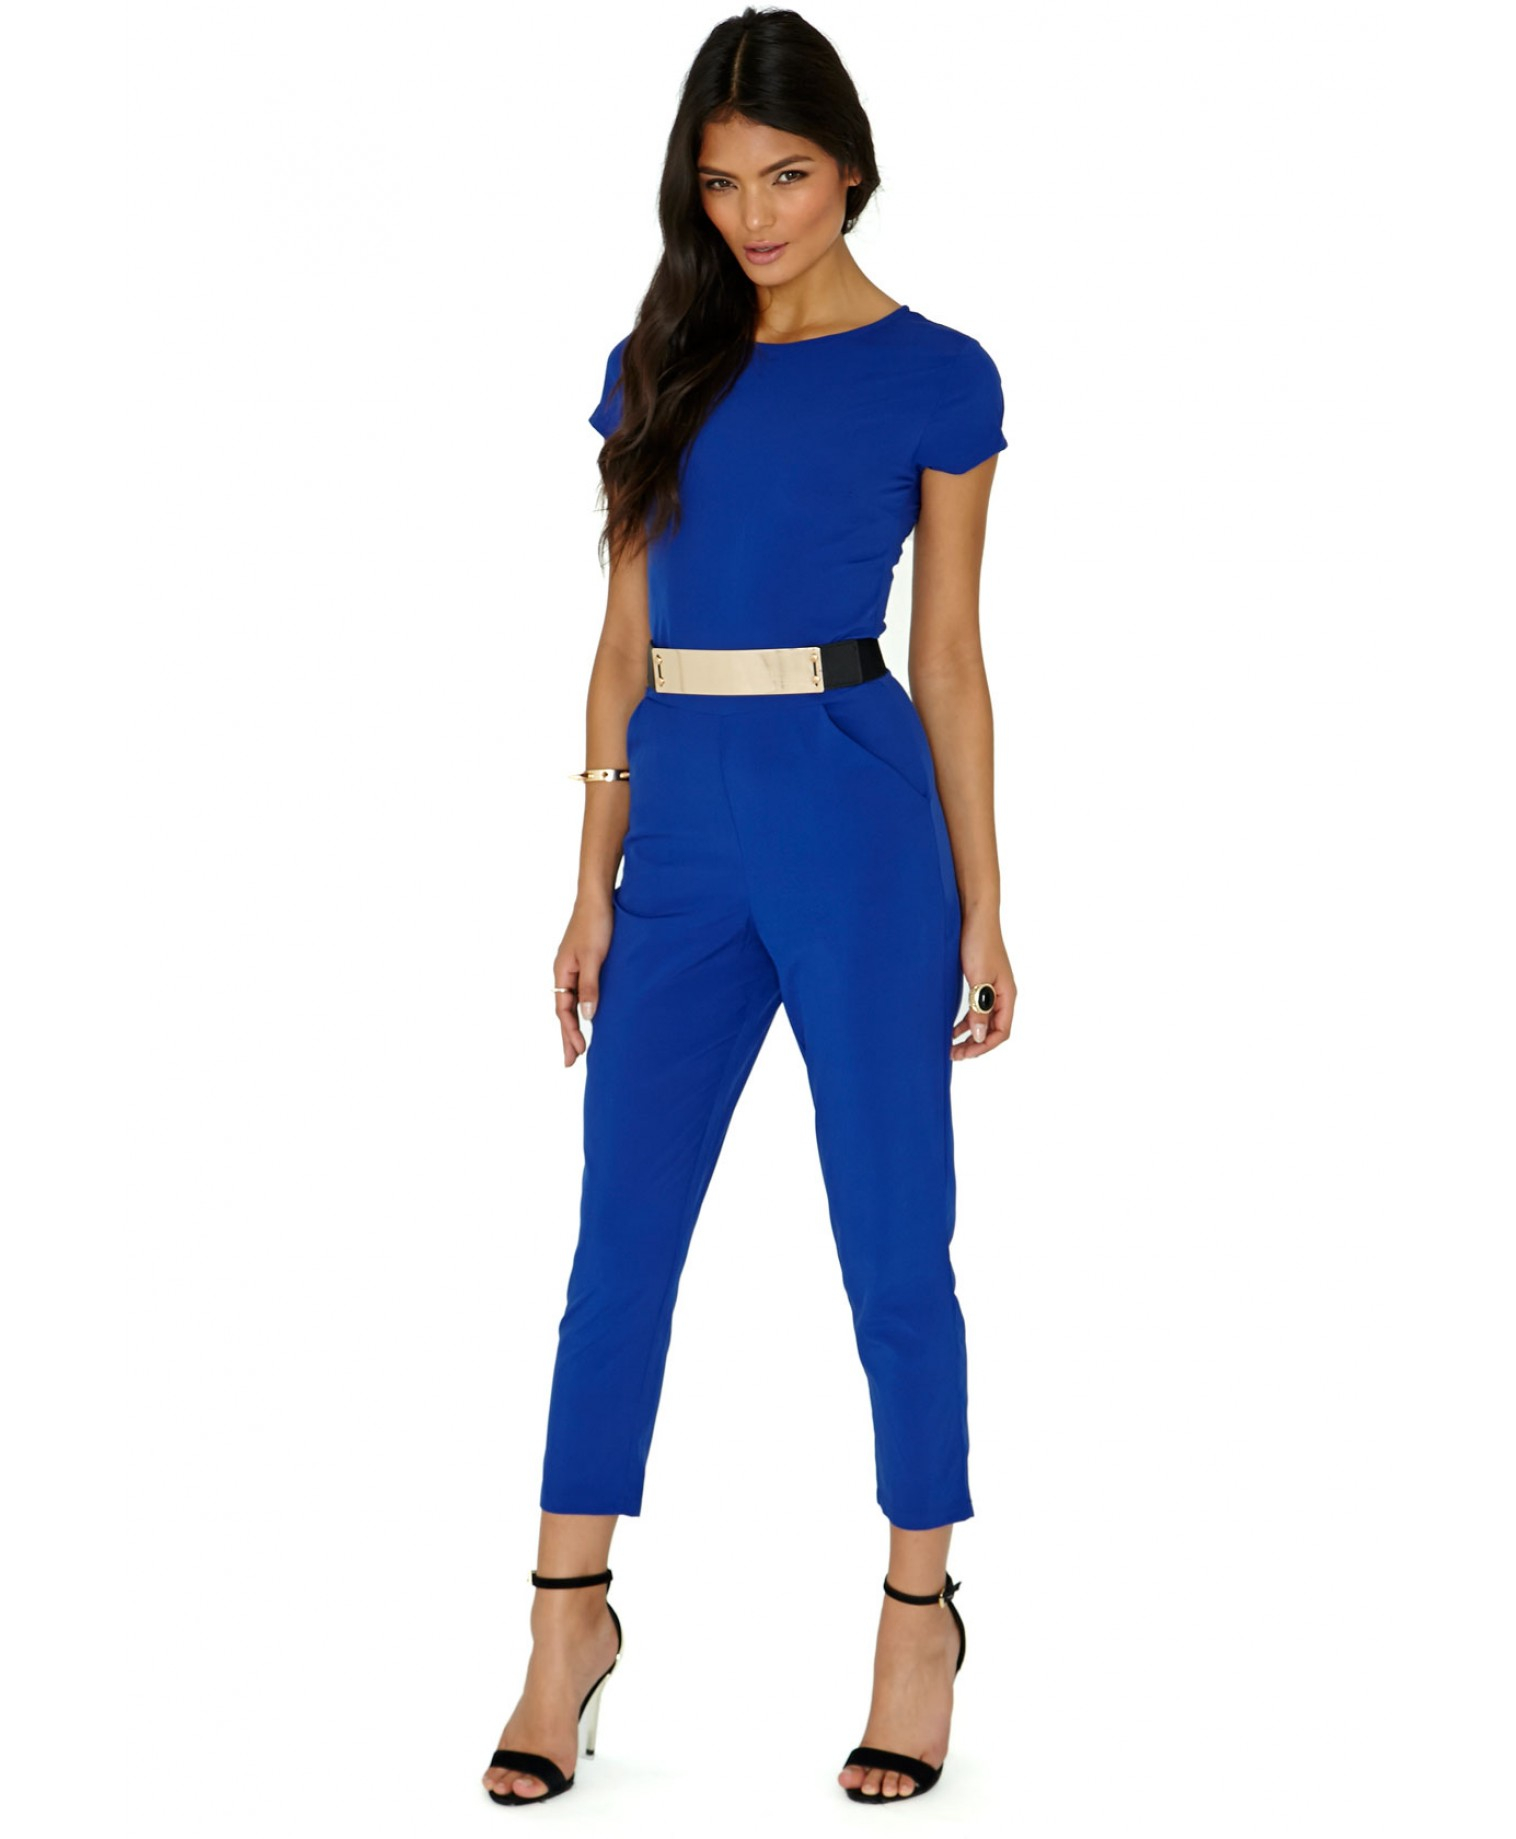 cb274c2b79e2 Lyst - Missguided Polly Blue Belted Jumpsuit in Blue